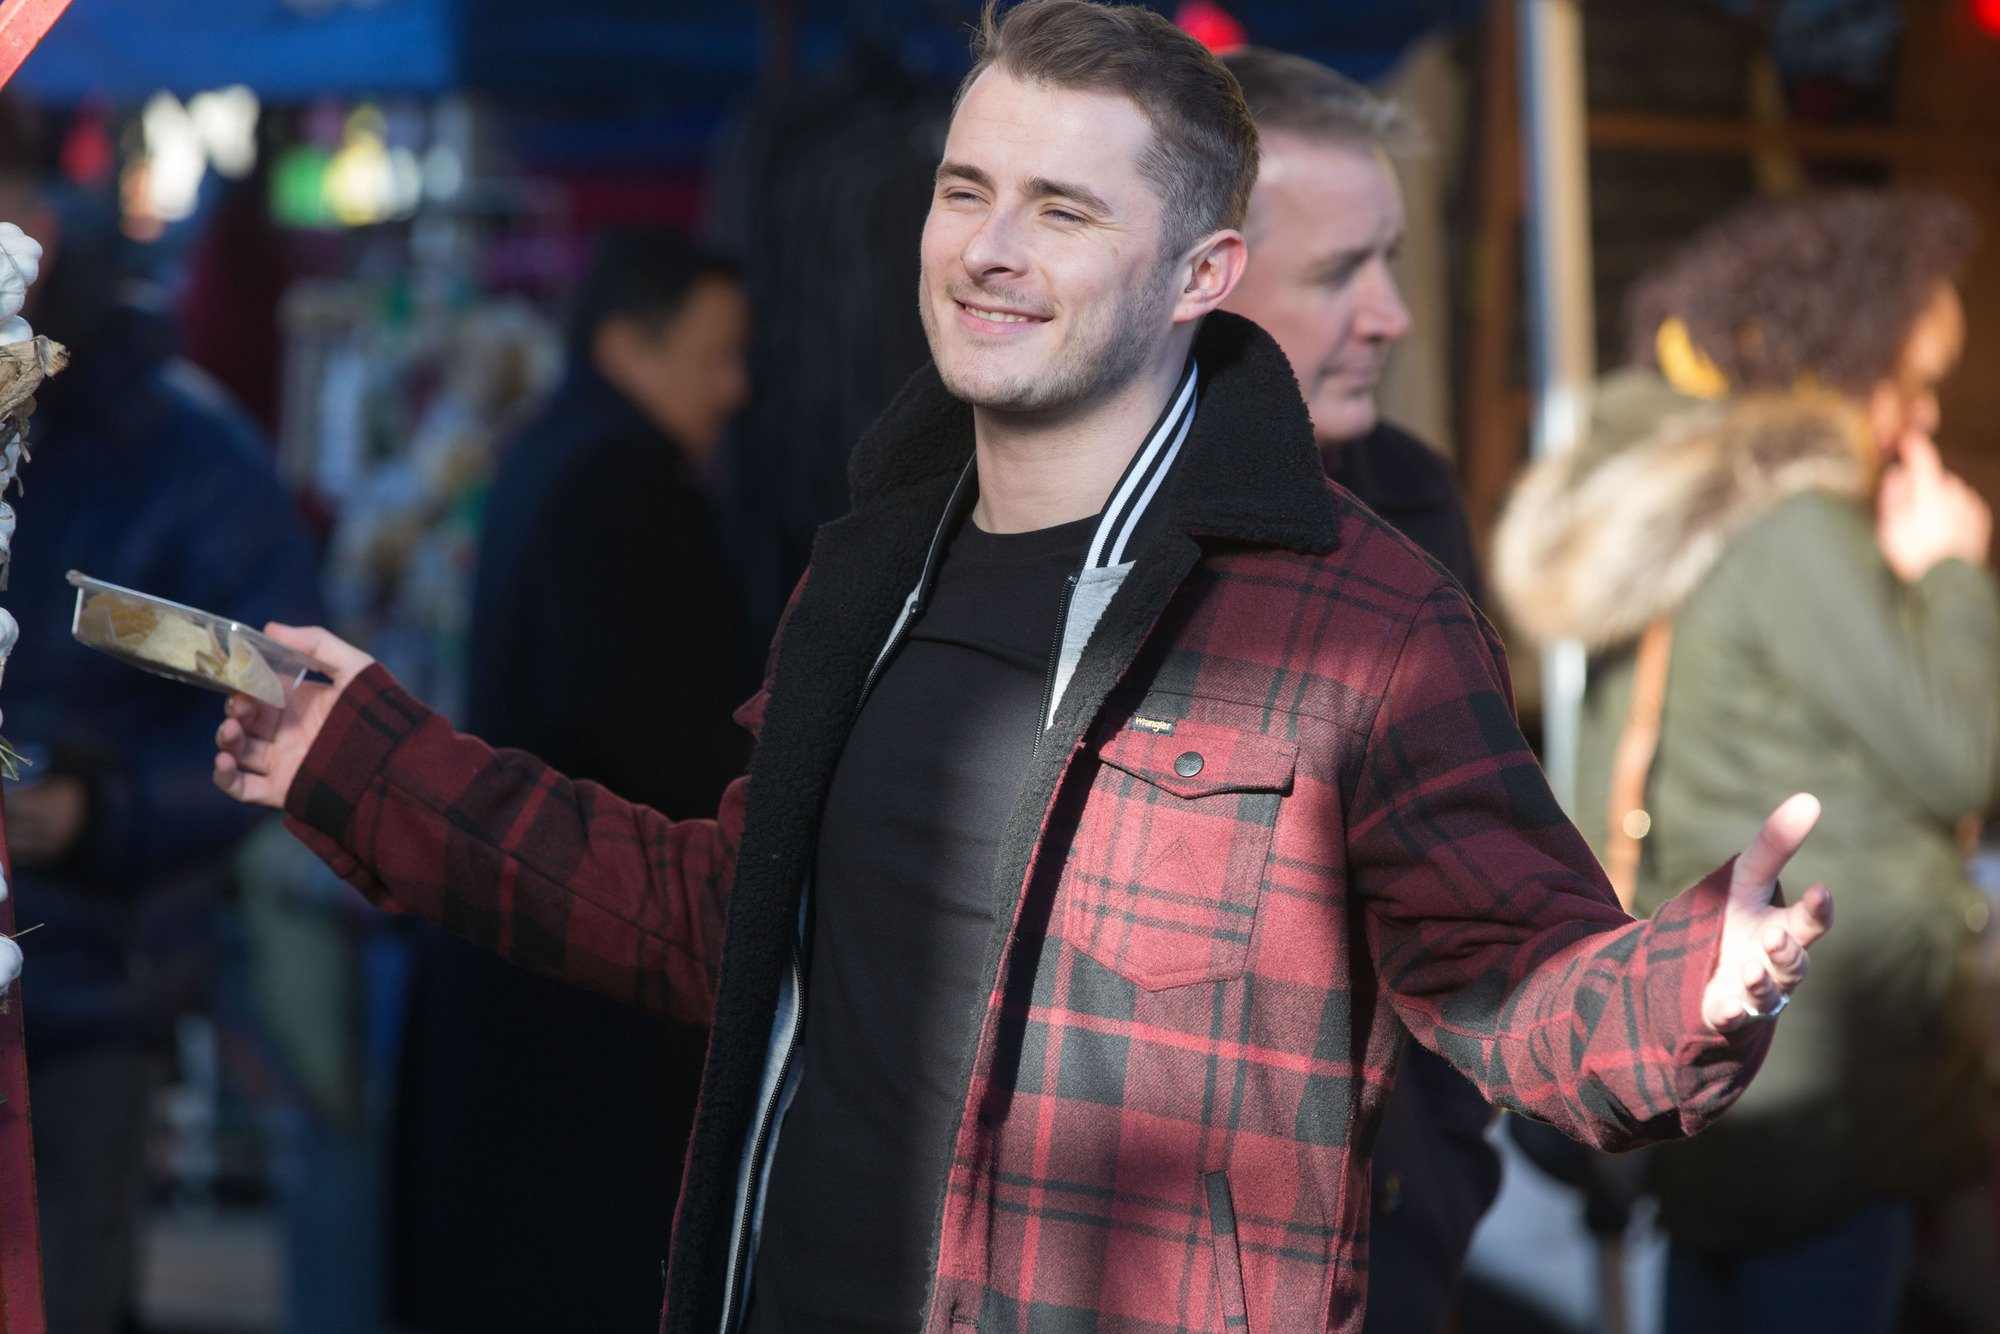 EastEnders spoilers: Ben Mitchell to overthrow Phil as the kingpin of Walford?